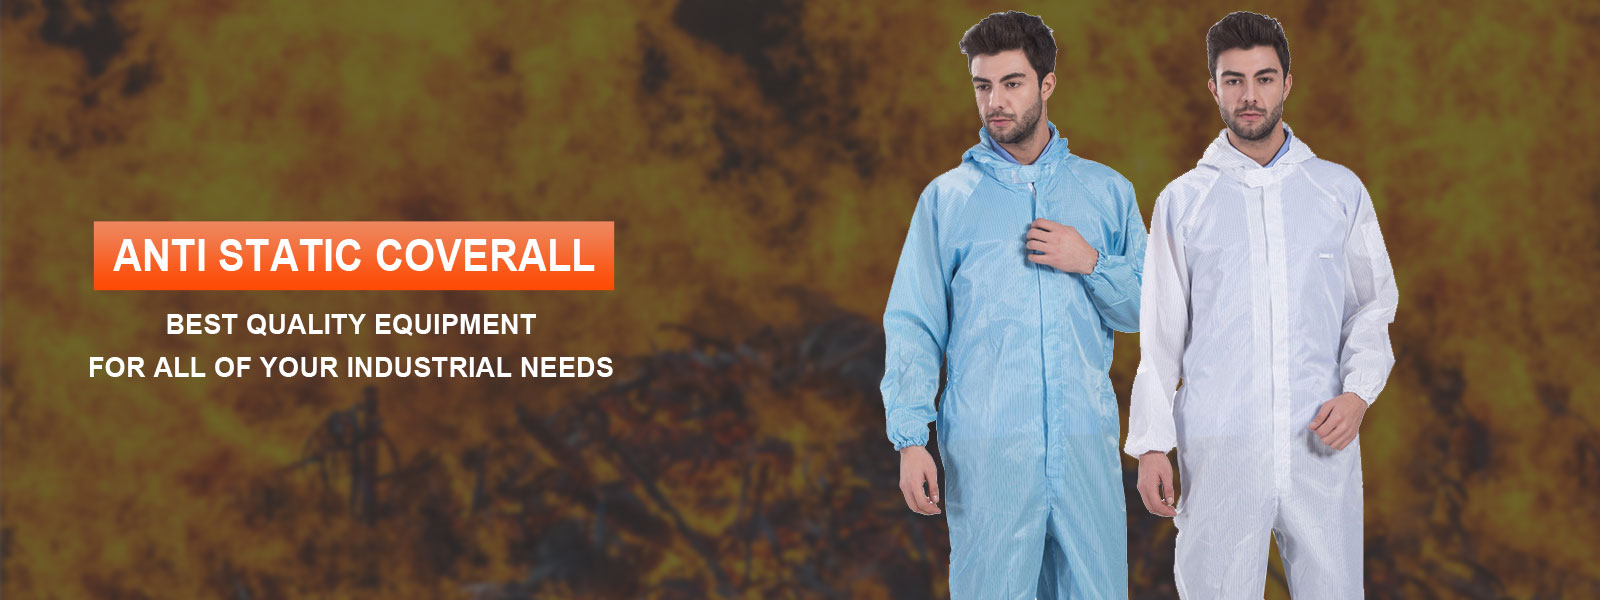 Anti Static Coverall Manufacturers in Dubai